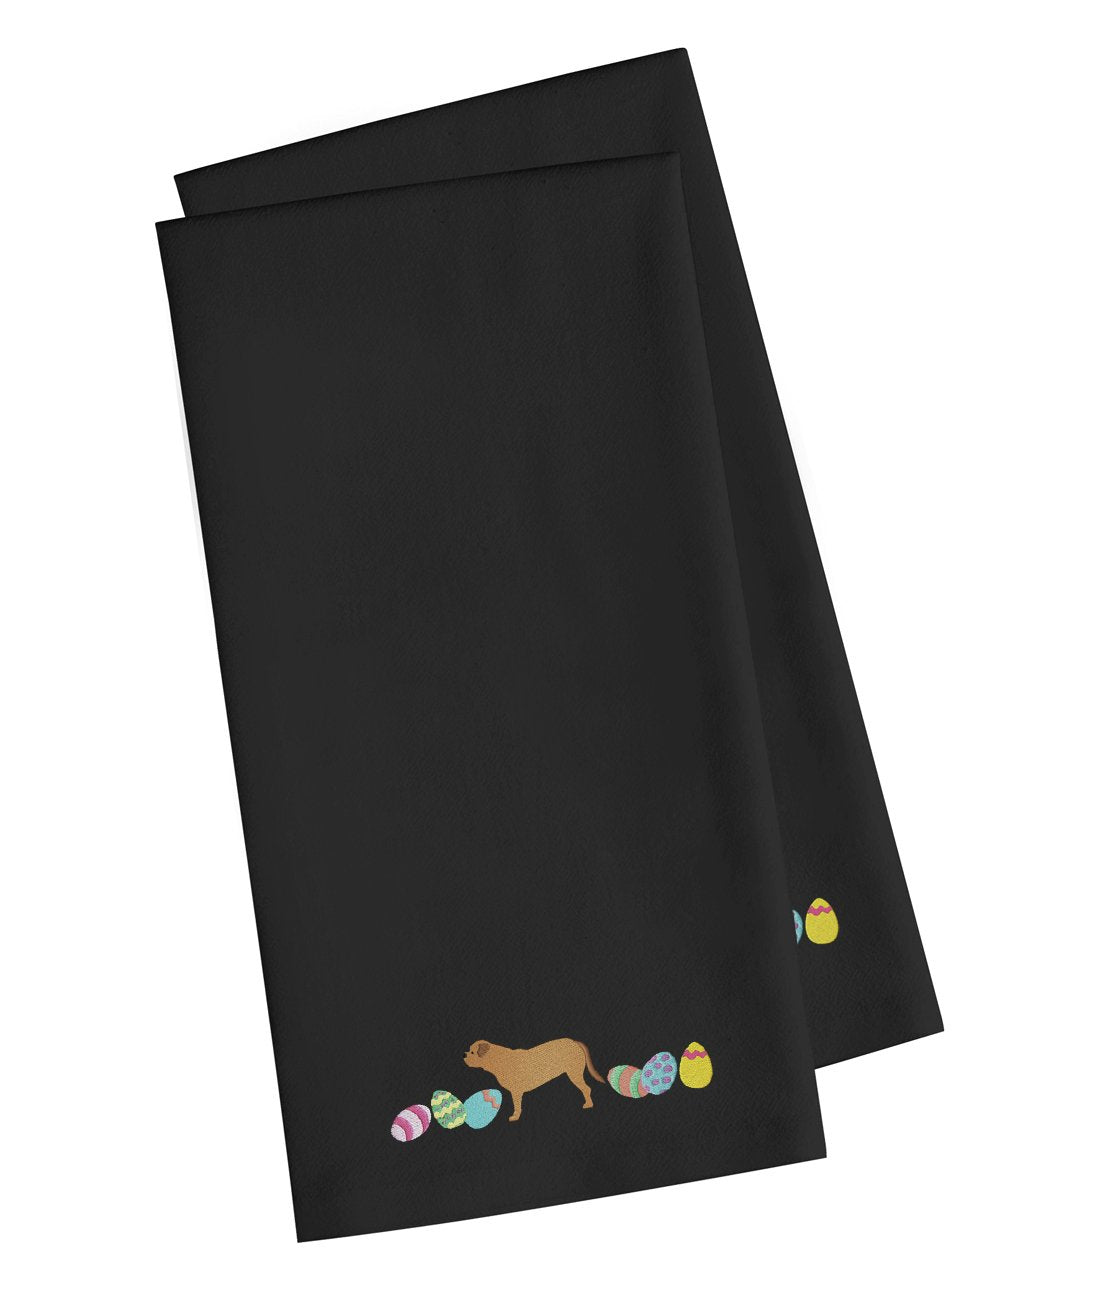 Dogue de Bordeaux Easter Black Embroidered Kitchen Towel Set of 2 CK1635BKTWE by Caroline's Treasures